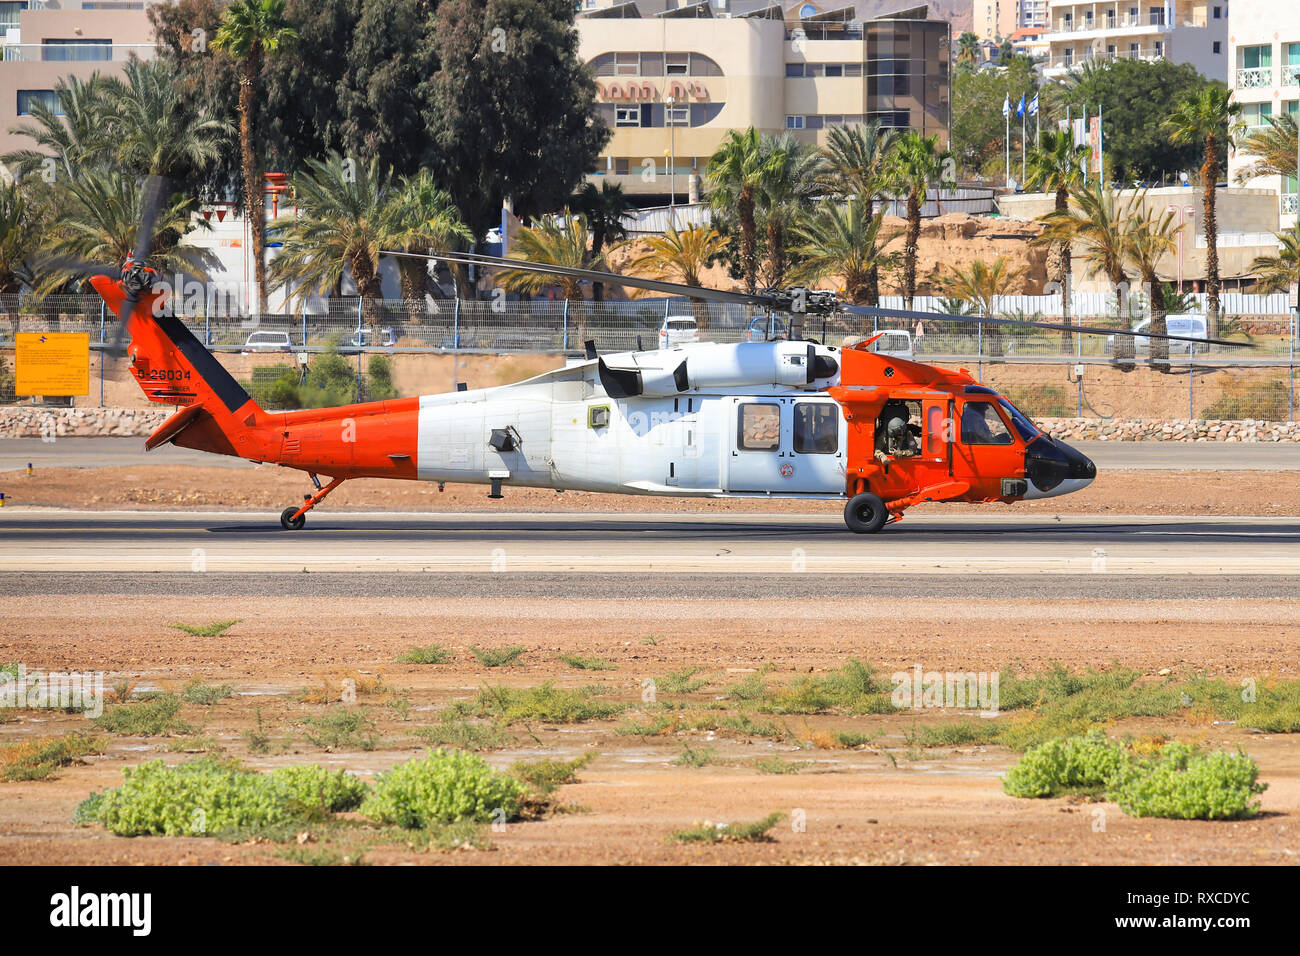 Eilat, ISRAEL-February 24, 2019: UH 60 from Multinational Force and Observers at old Eilat international Airport. - Stock Image